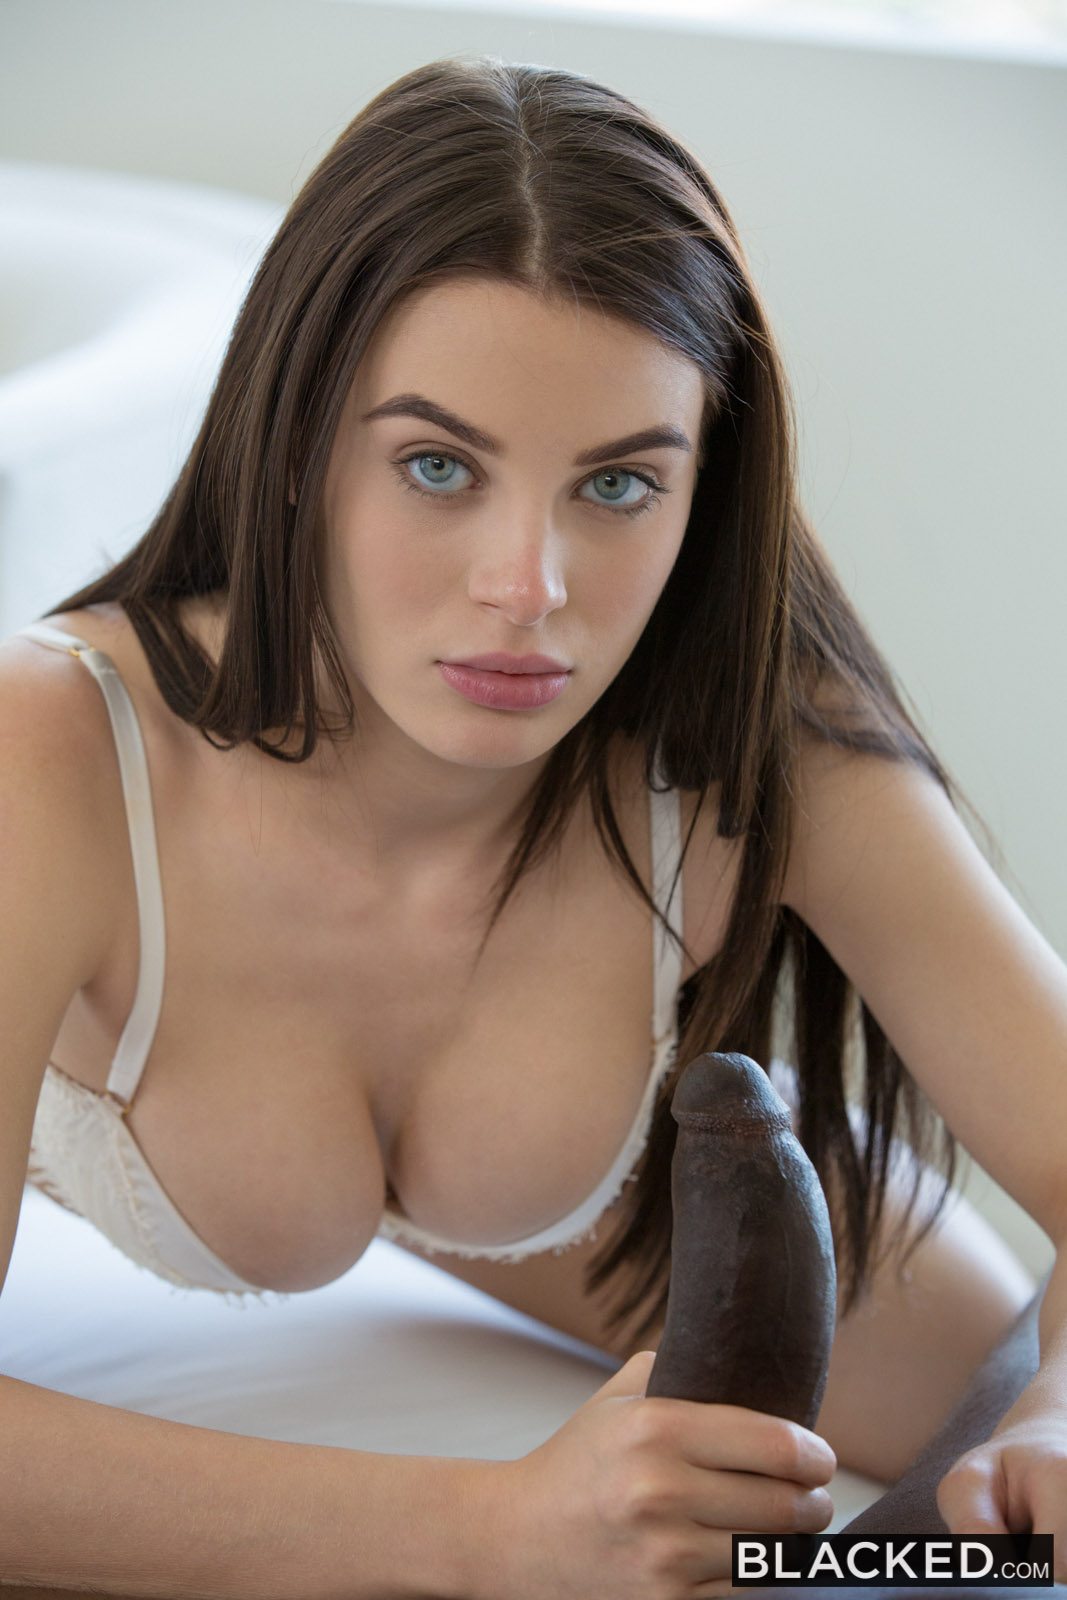 Lana rhoades fake ass